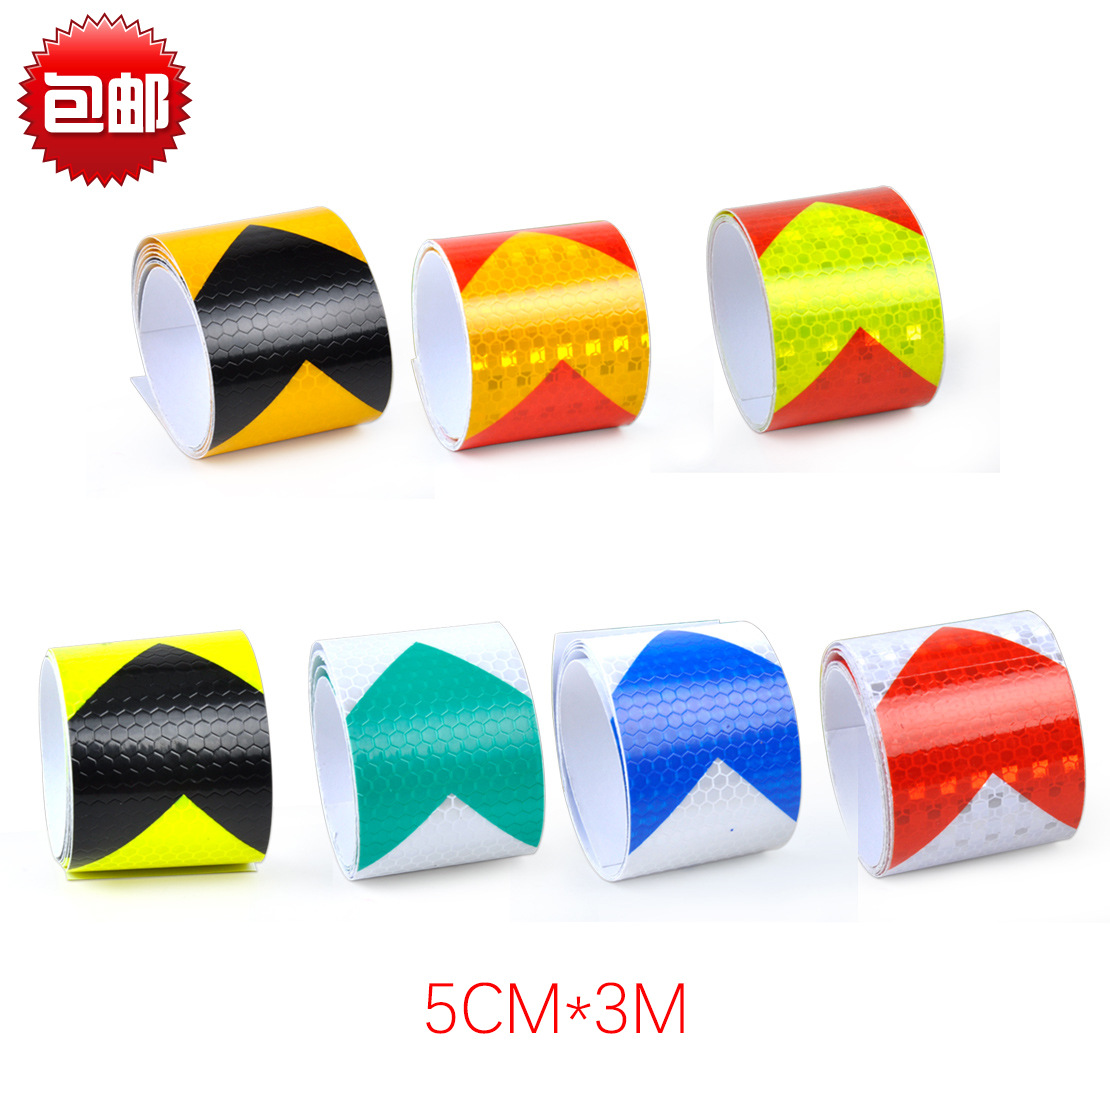 Reflective Adhesive Tape 5 Cm Traffic Safe Adhesive Tape Reflective Stickers Warning Tape Lattice Reflective Film Body Stickers